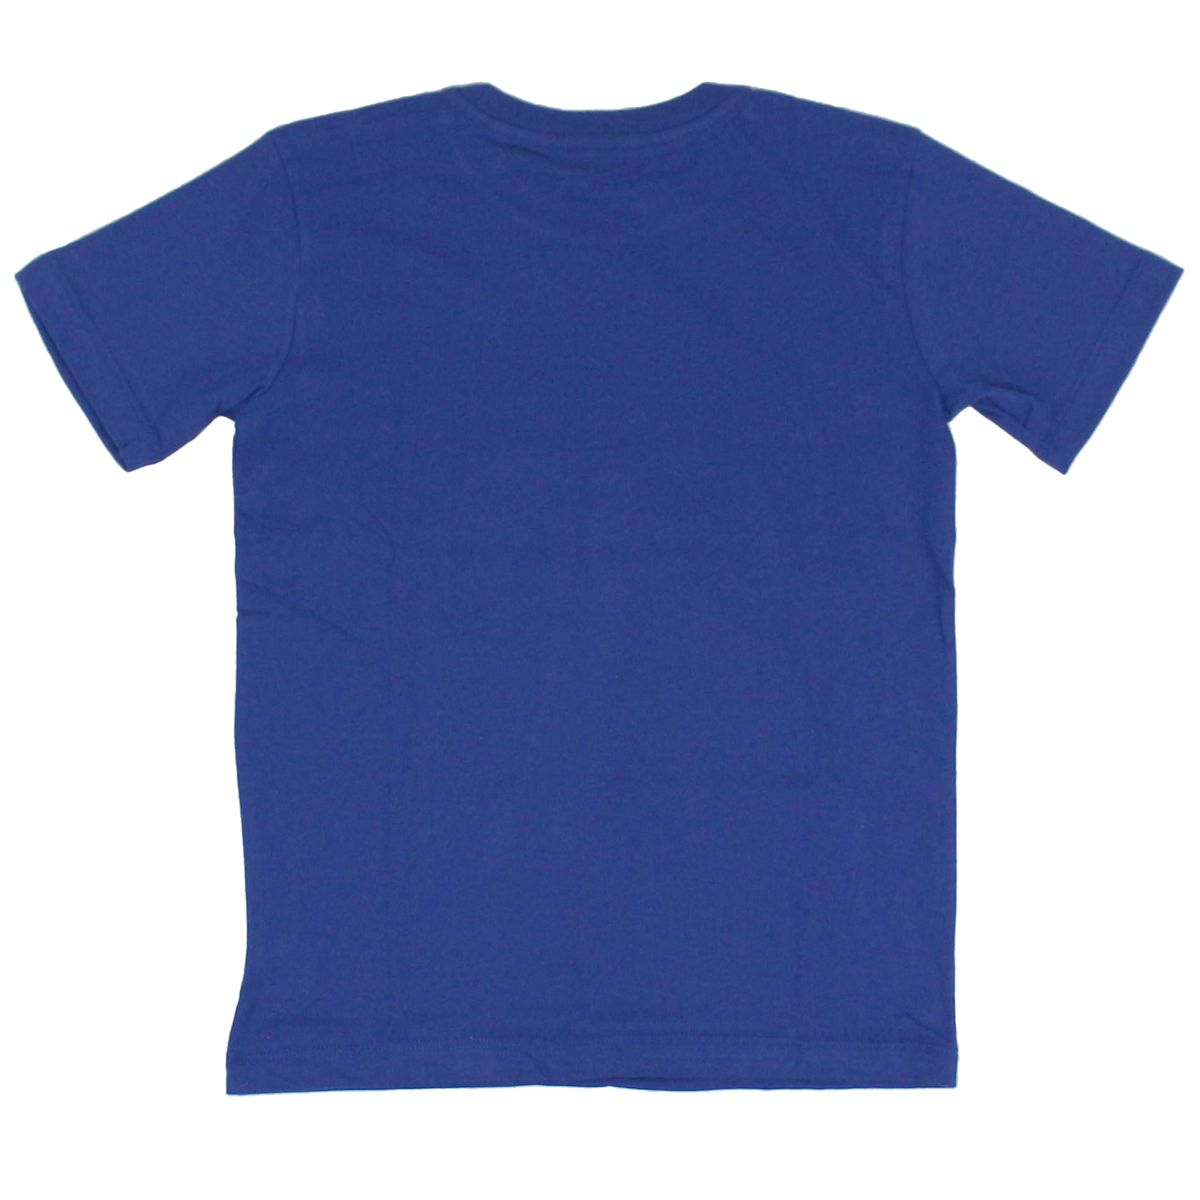 Cotton T-shirt with print and logo Royal Lacoste